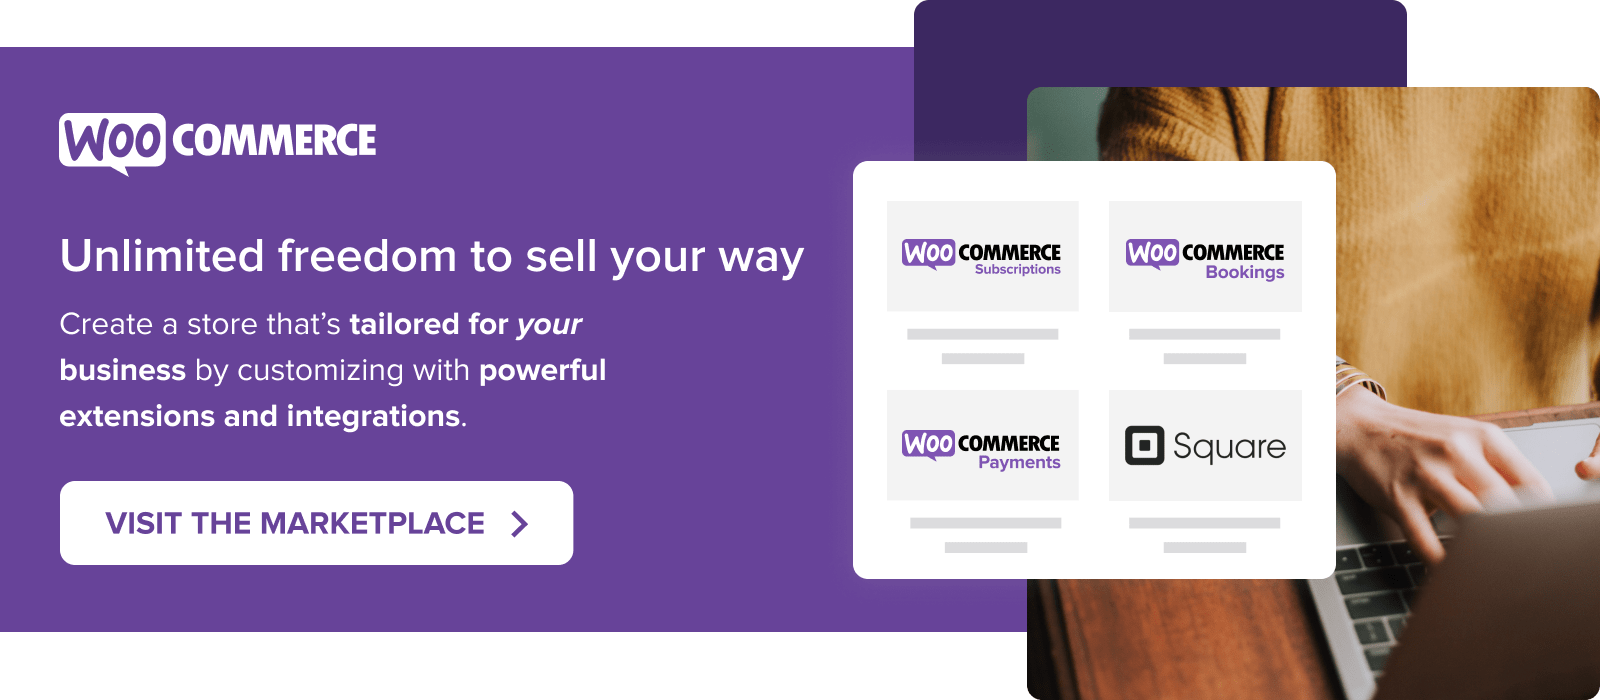 Visit the extensions marketplace to customize your store